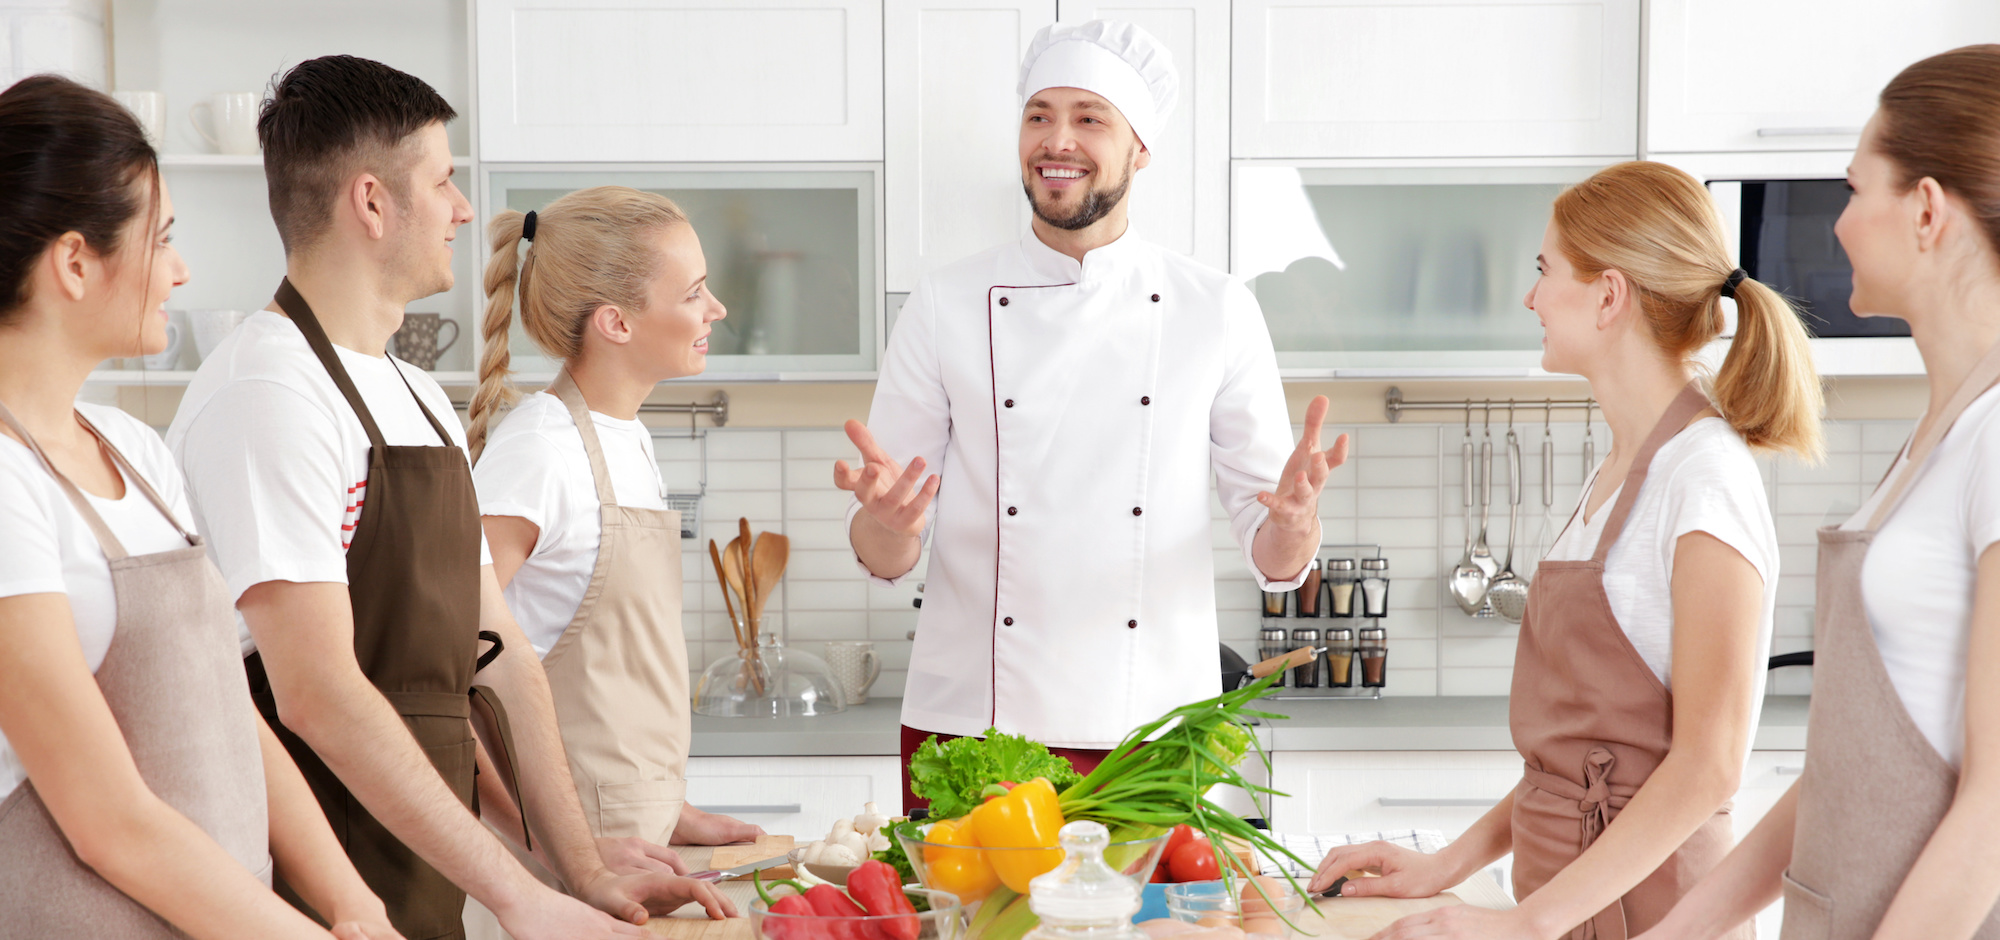 cooking classes spring lake nj